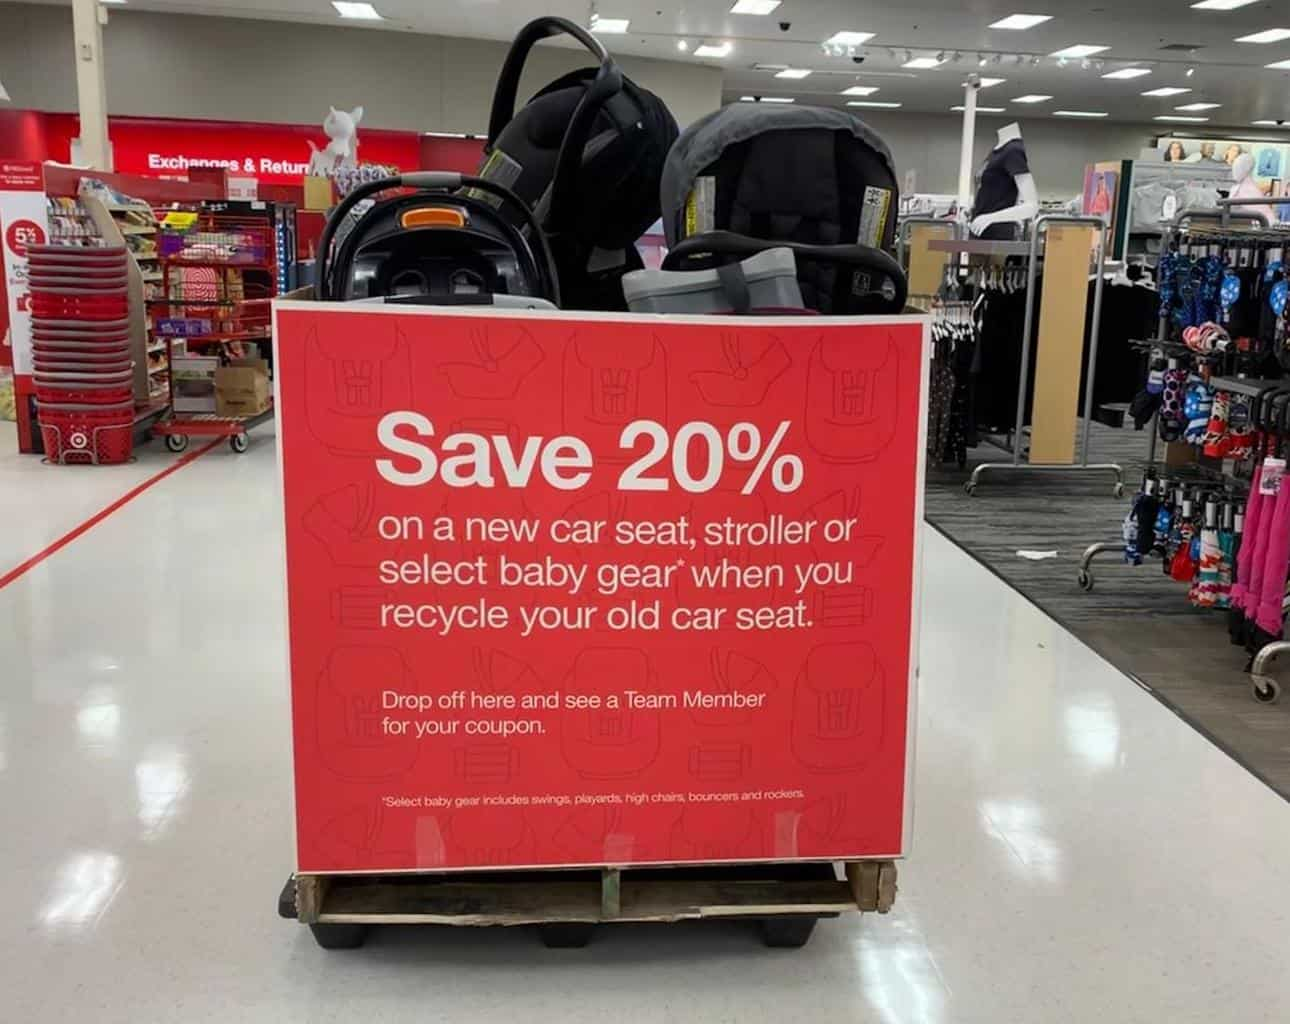 Target car seat trade-in 2020: Recycling event returns Sept. 13